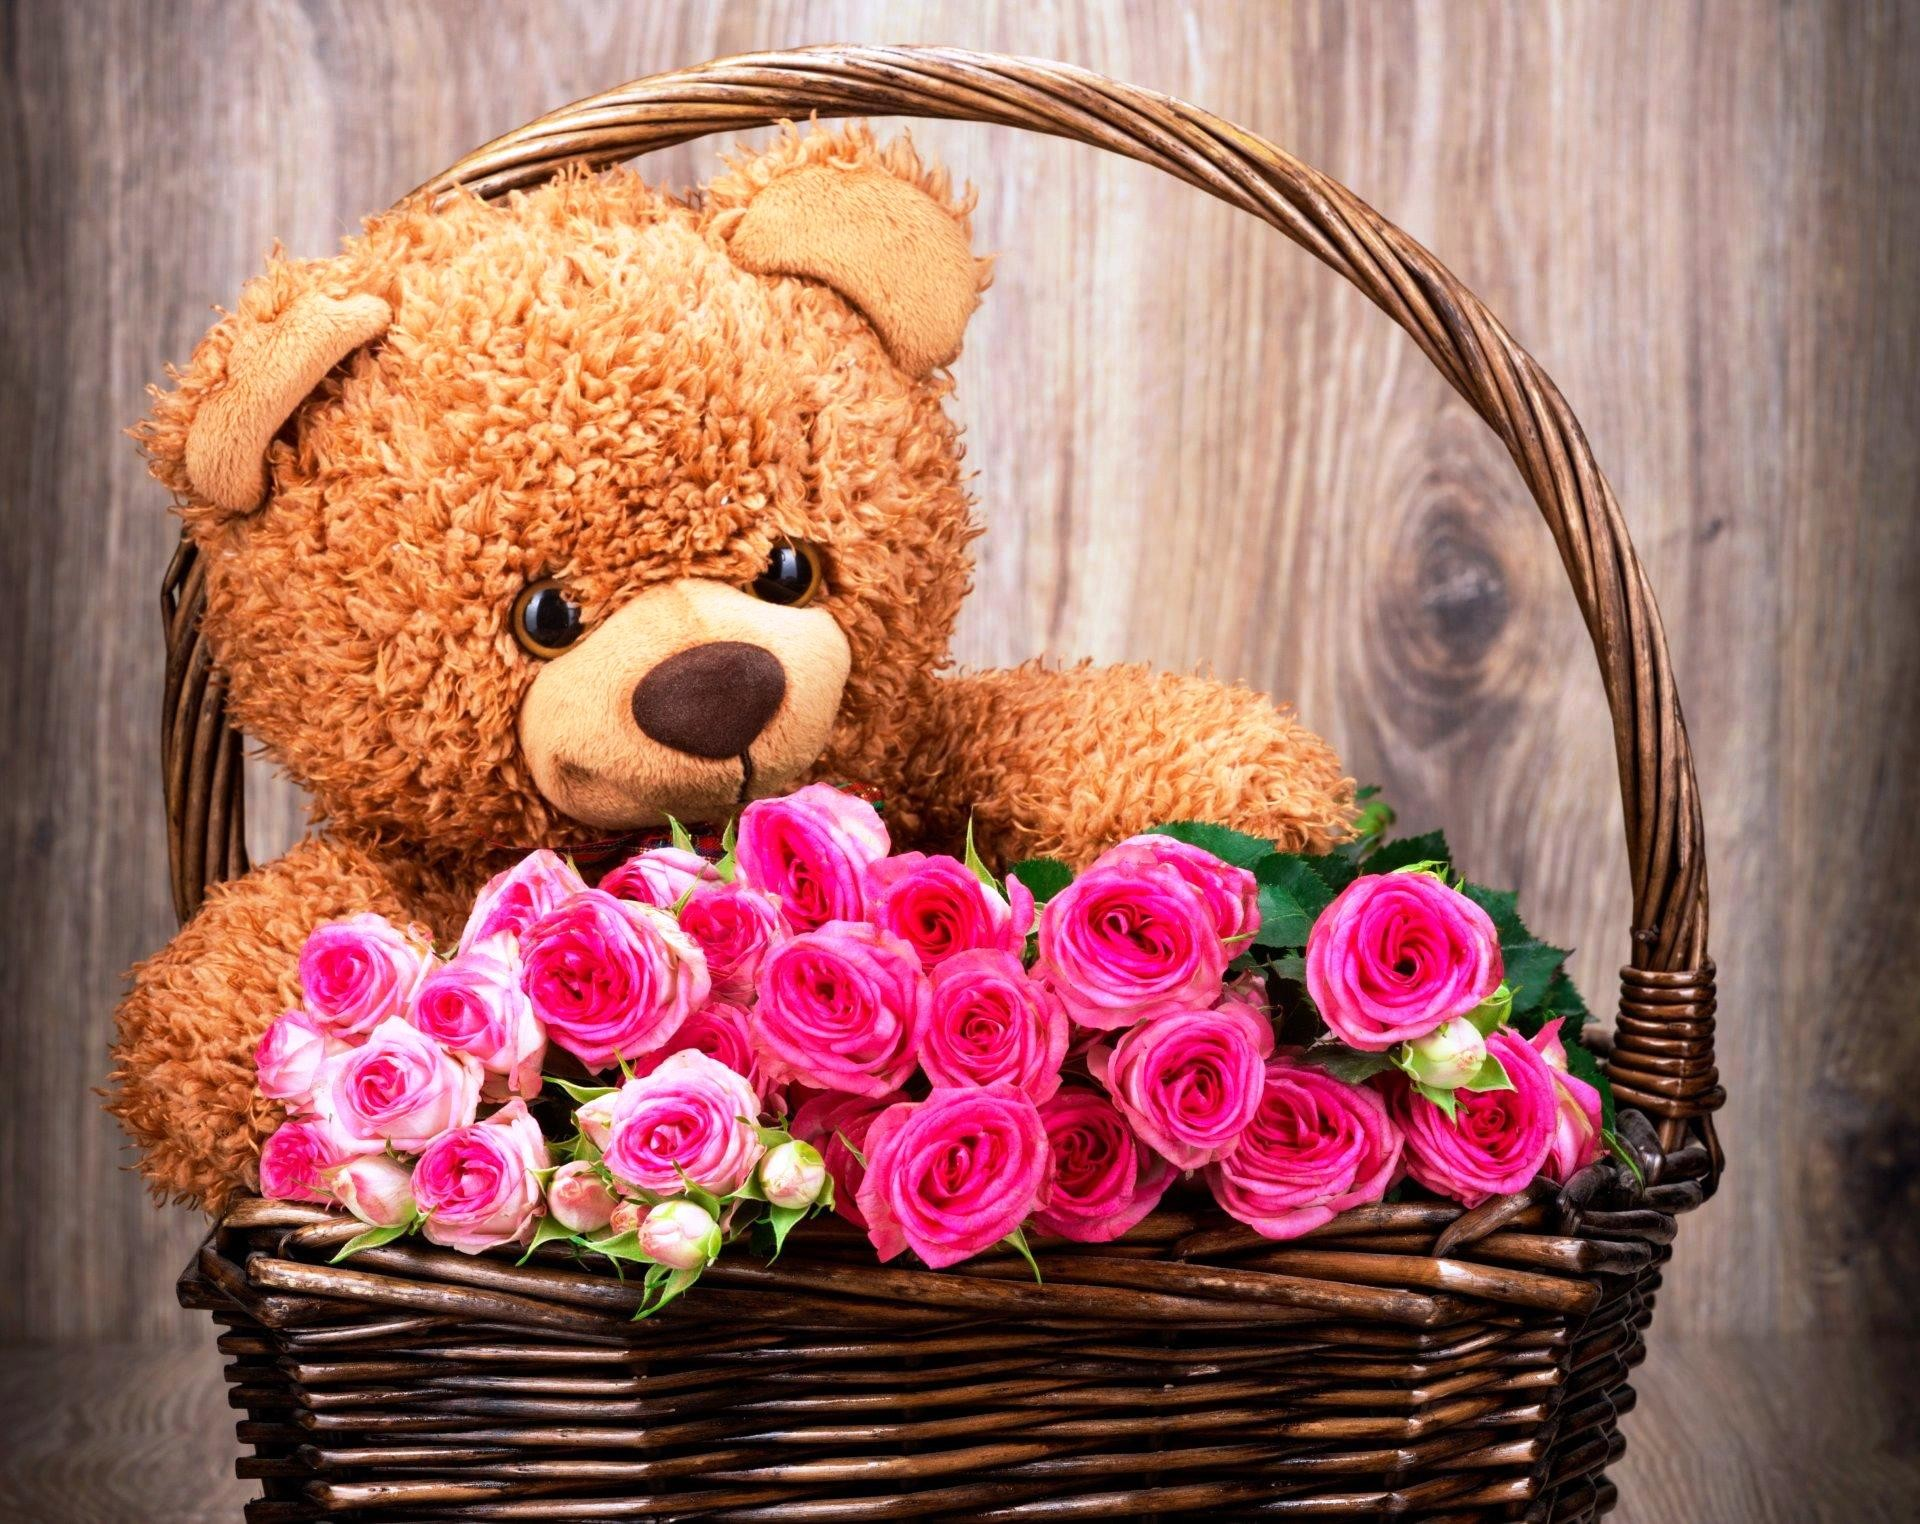 Res: 1920x1524, Pink Roses With Teddy Bear Wallpapers